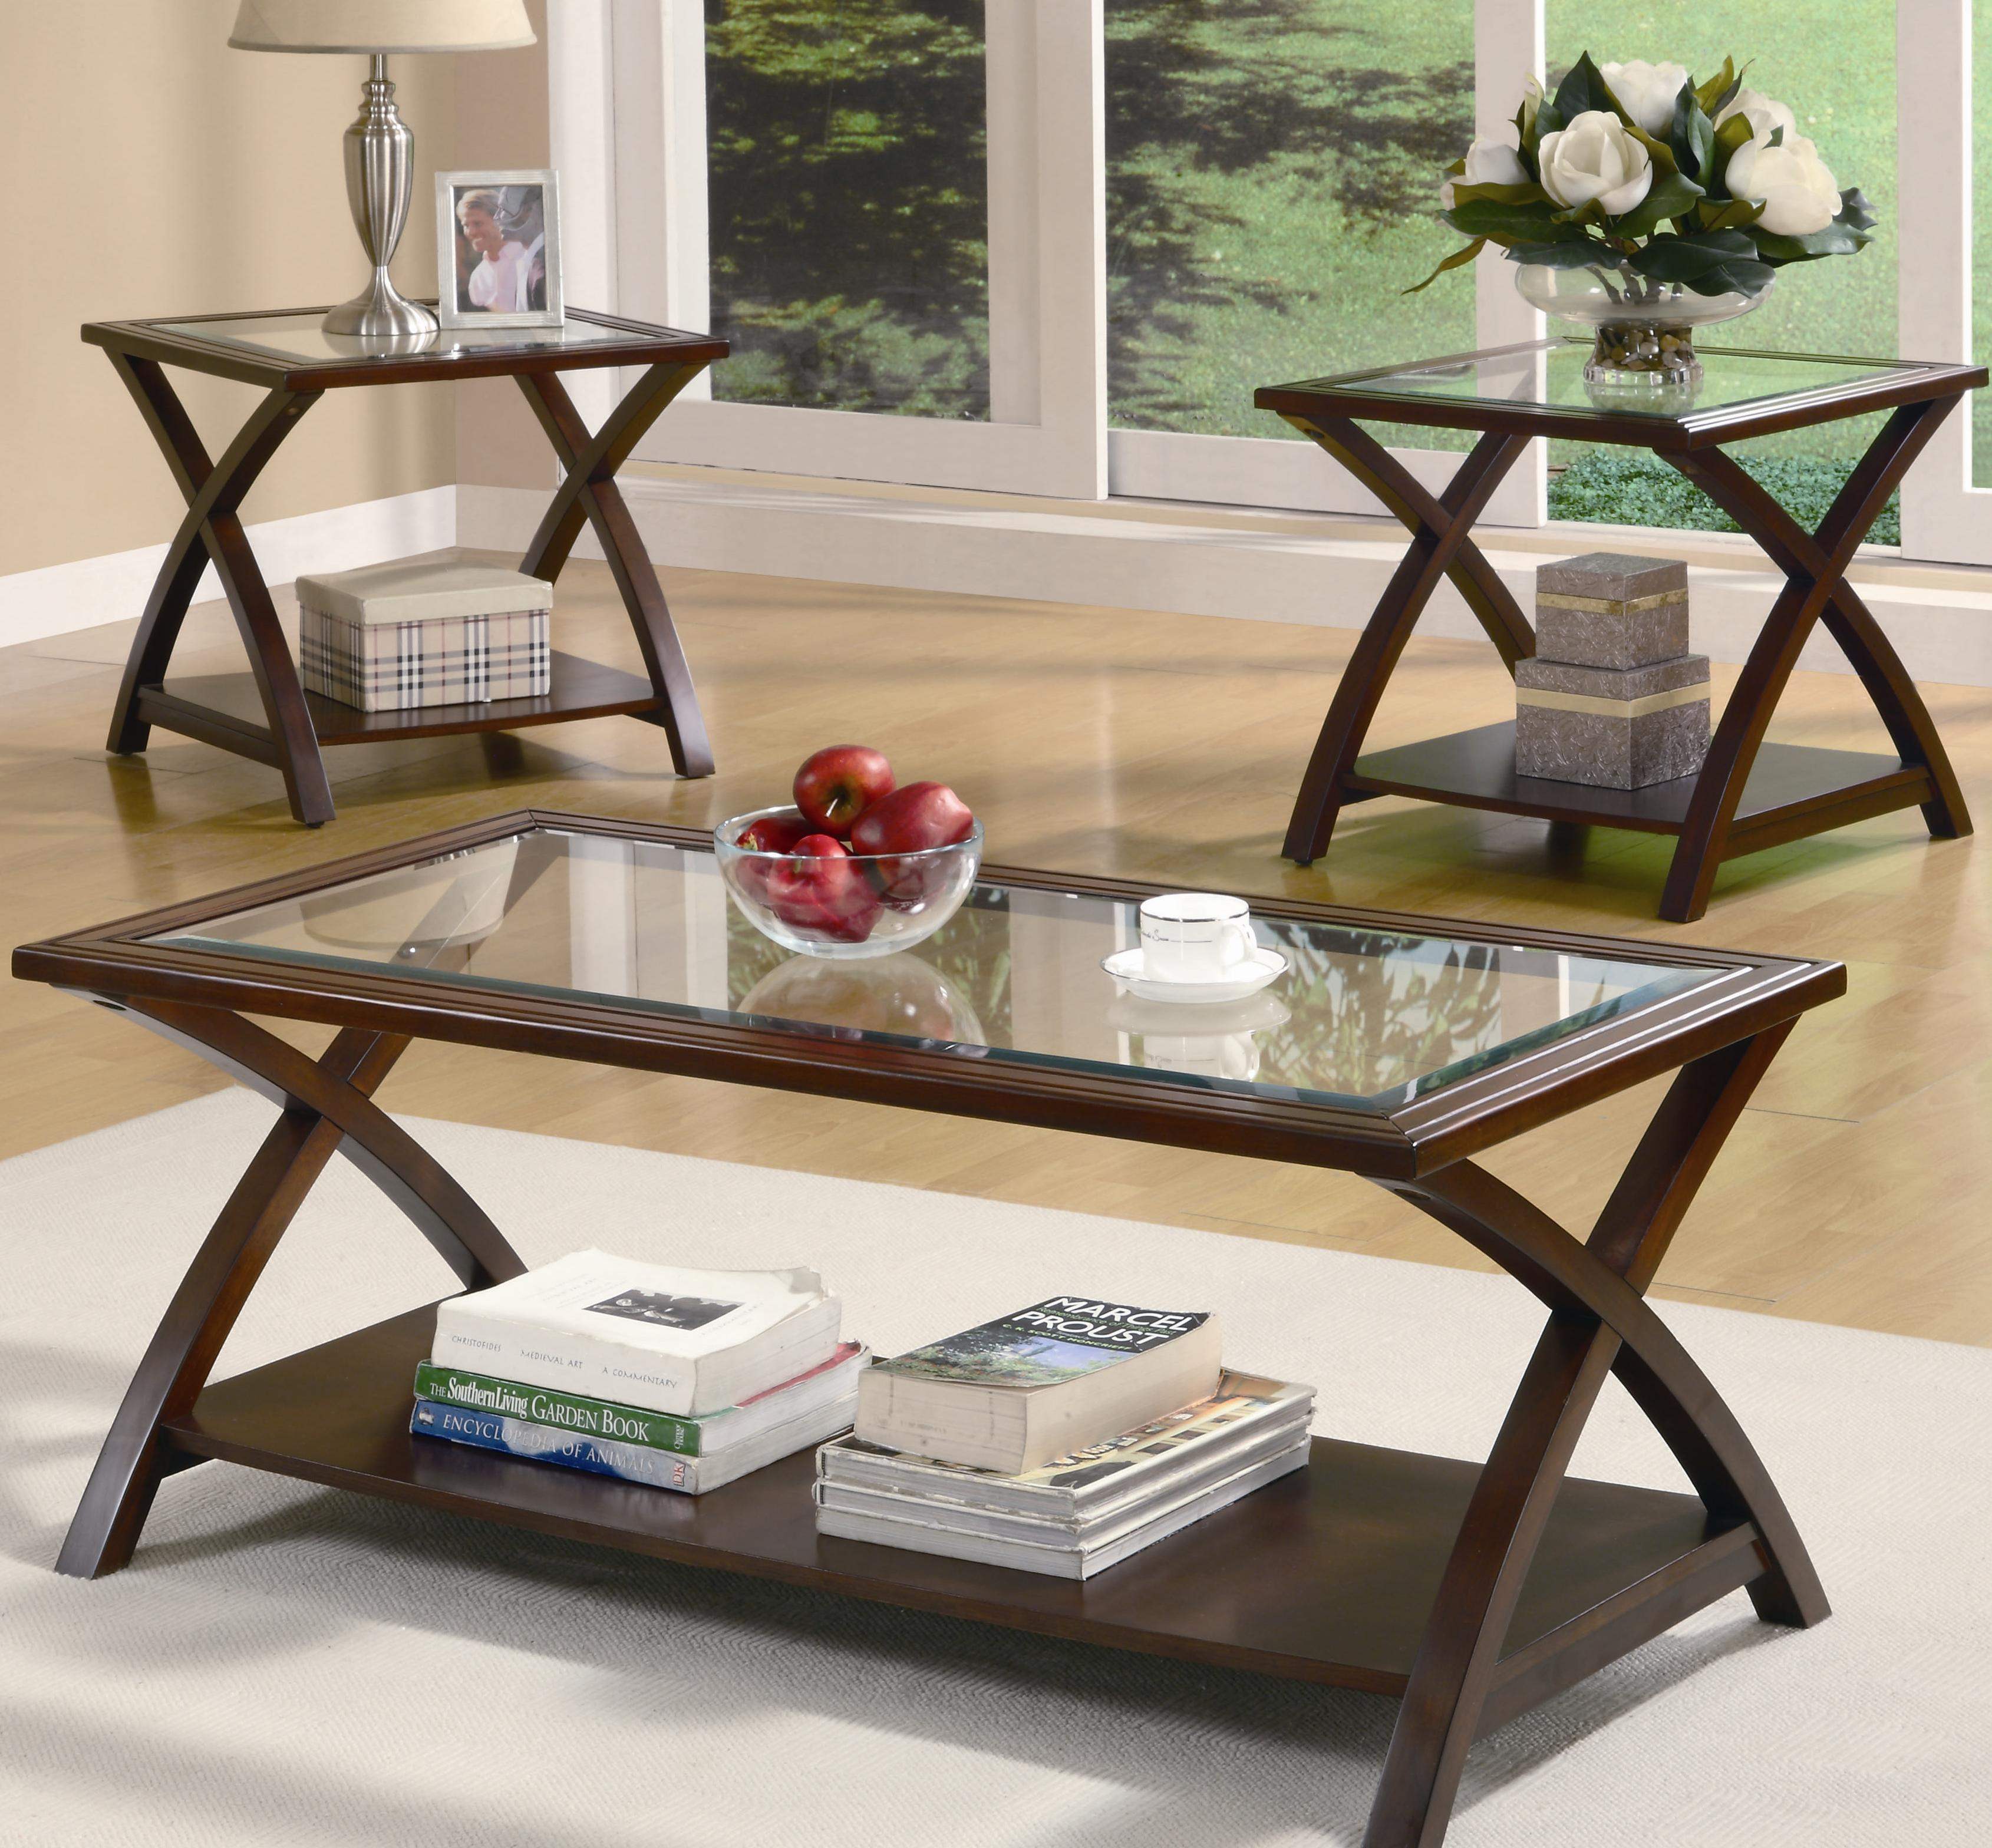 coffee tables casual occasional group elegant glass end marble top table modern soft tan leather sofa big lots lamps camel brown couch cherry wood and thomasville sectional sofas